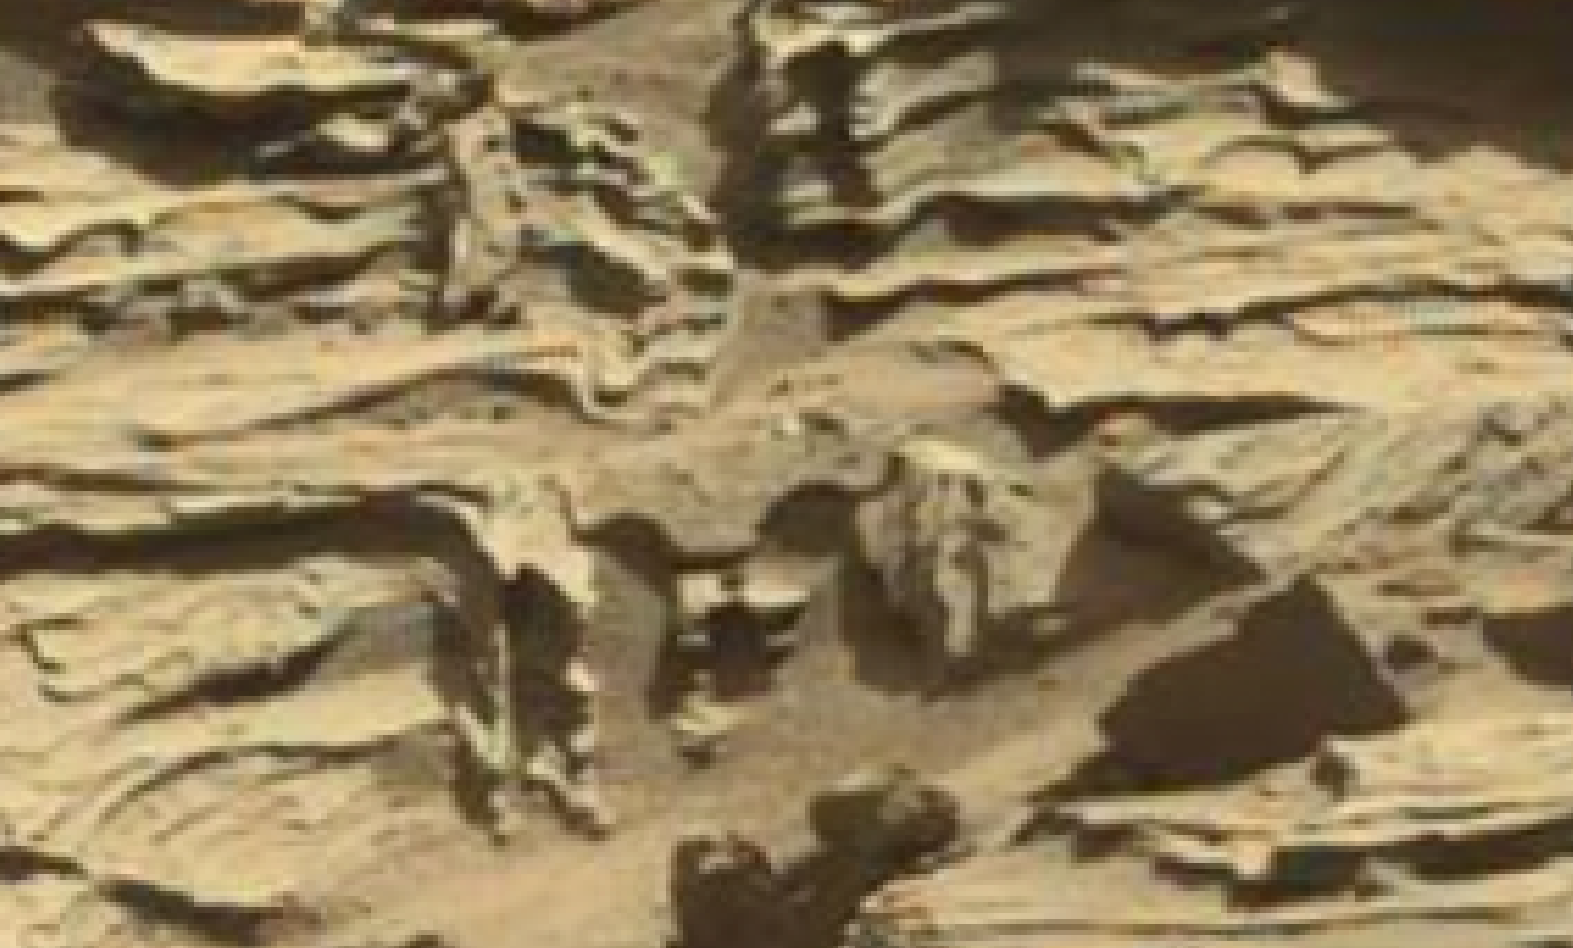 mars sol 1298 anomaly-artifacts 16 was life on mars